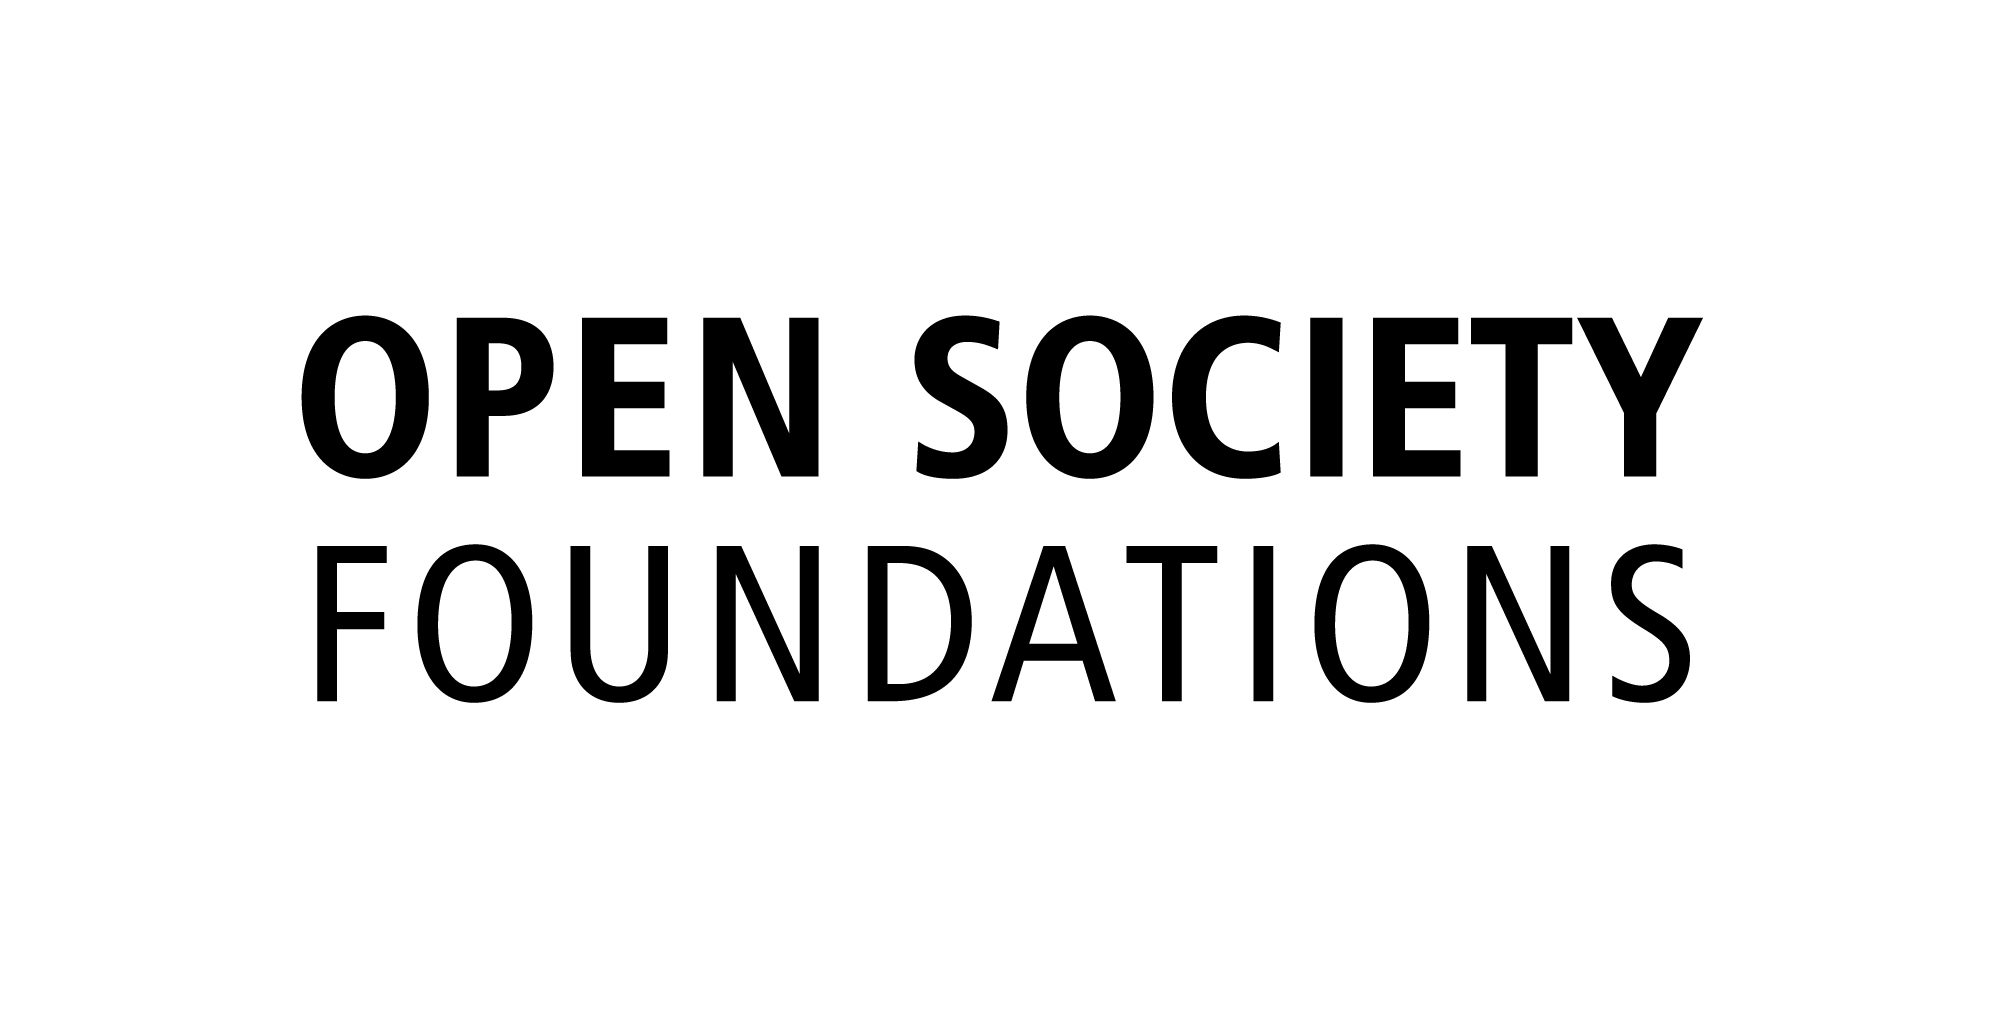 Supported by a grant from Open Society Foundations